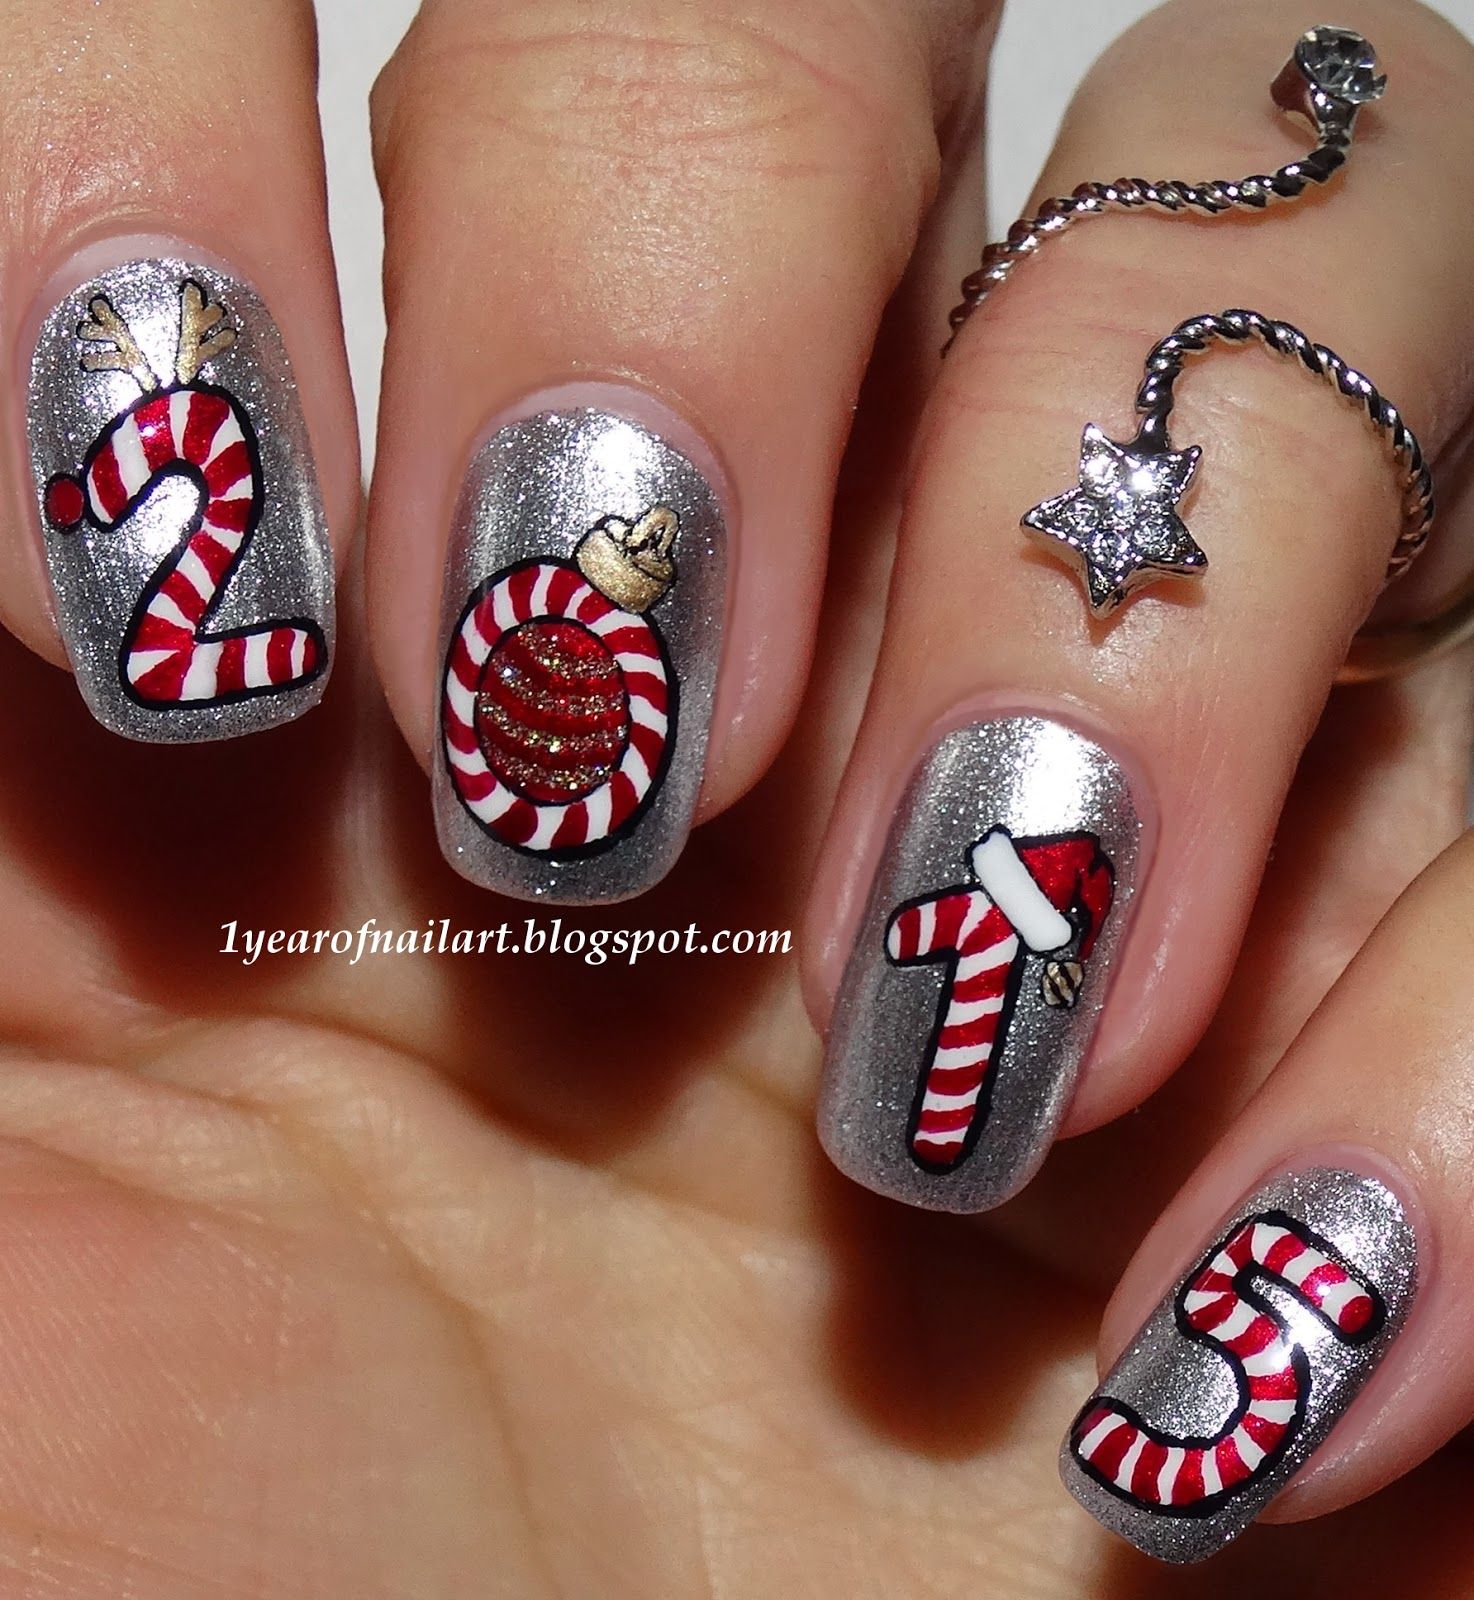 Http1yearofnailartspot201412four candy caneml explore edgy nail art edgy nails and more prinsesfo Choice Image